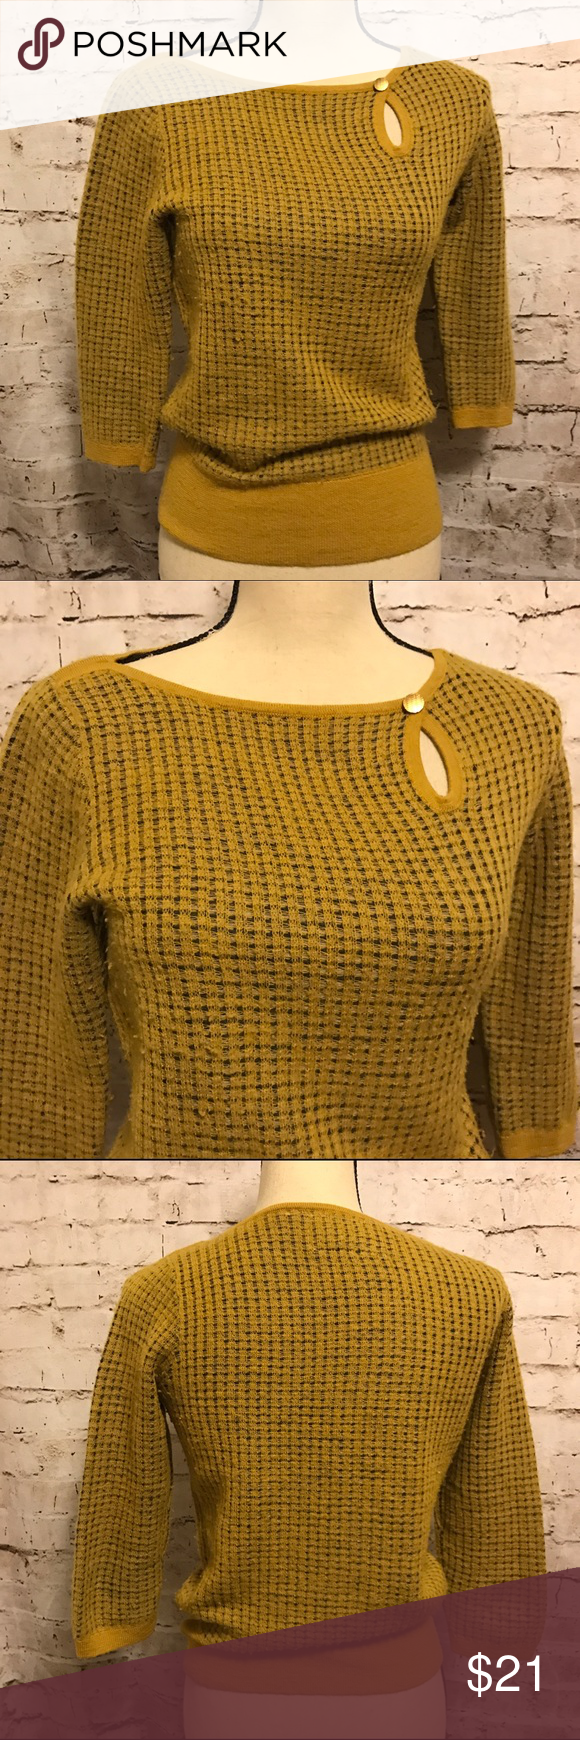 Anthropologie Sweater EDIE Yellow Gold Gorgeous | Shops, Beautiful ...